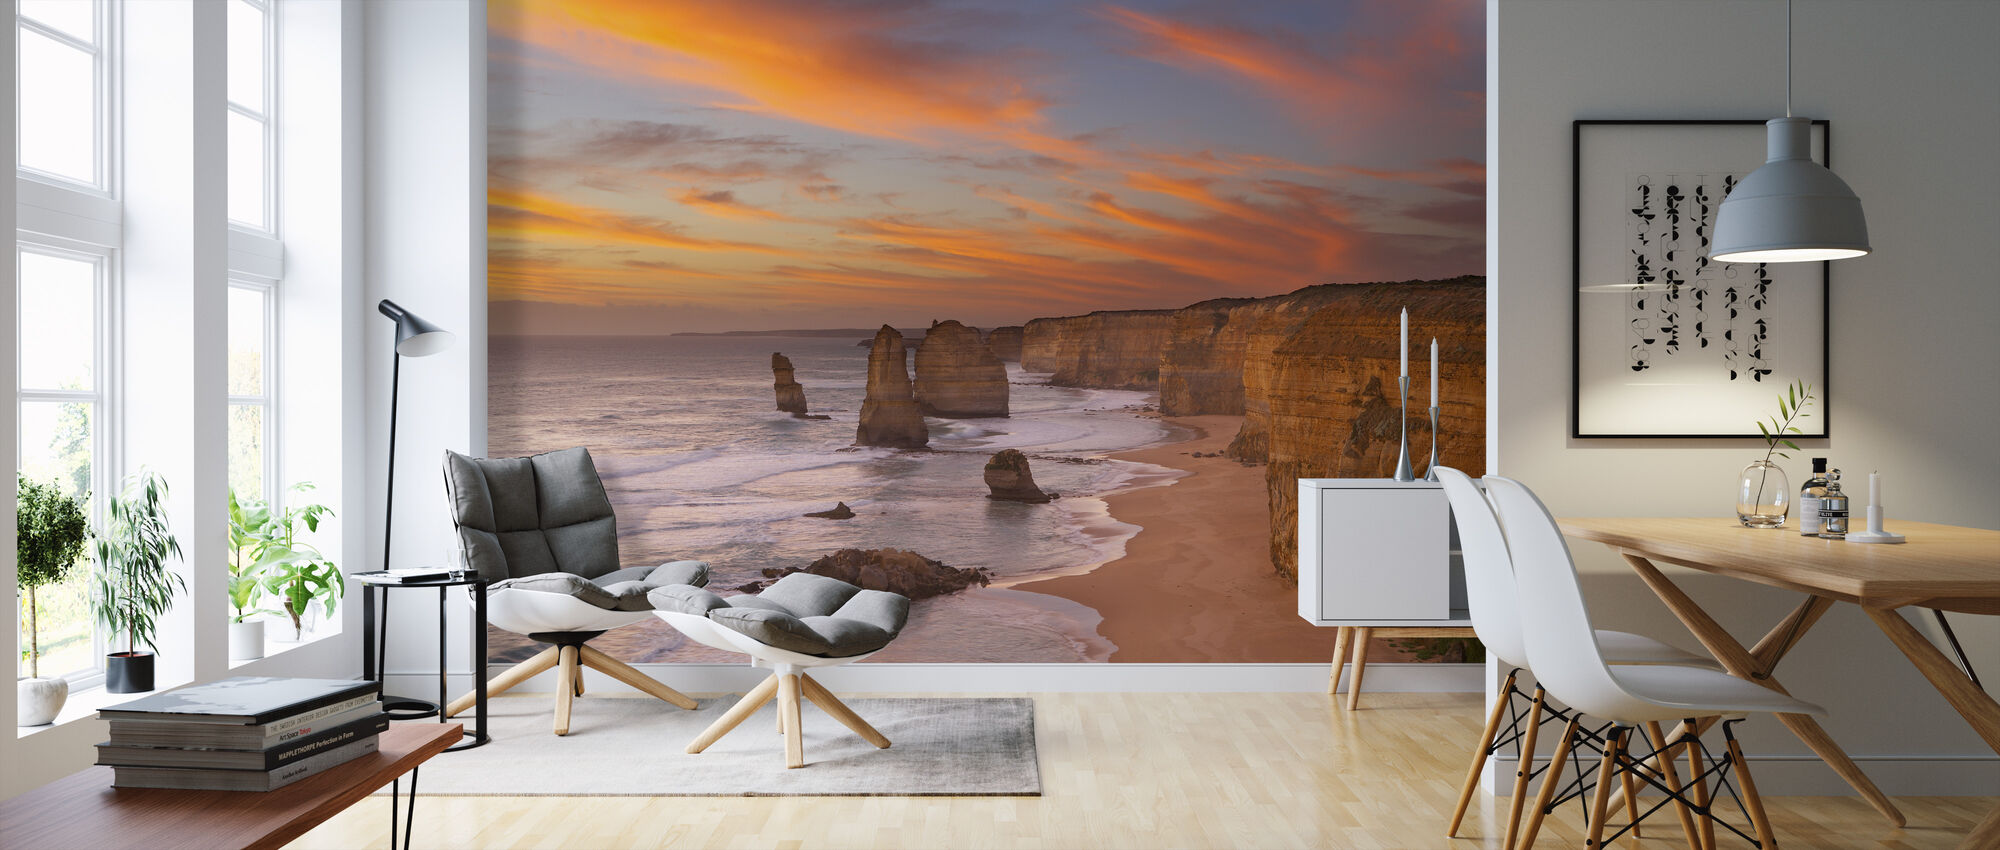 Twelve Apostles - Wallpaper - Living Room